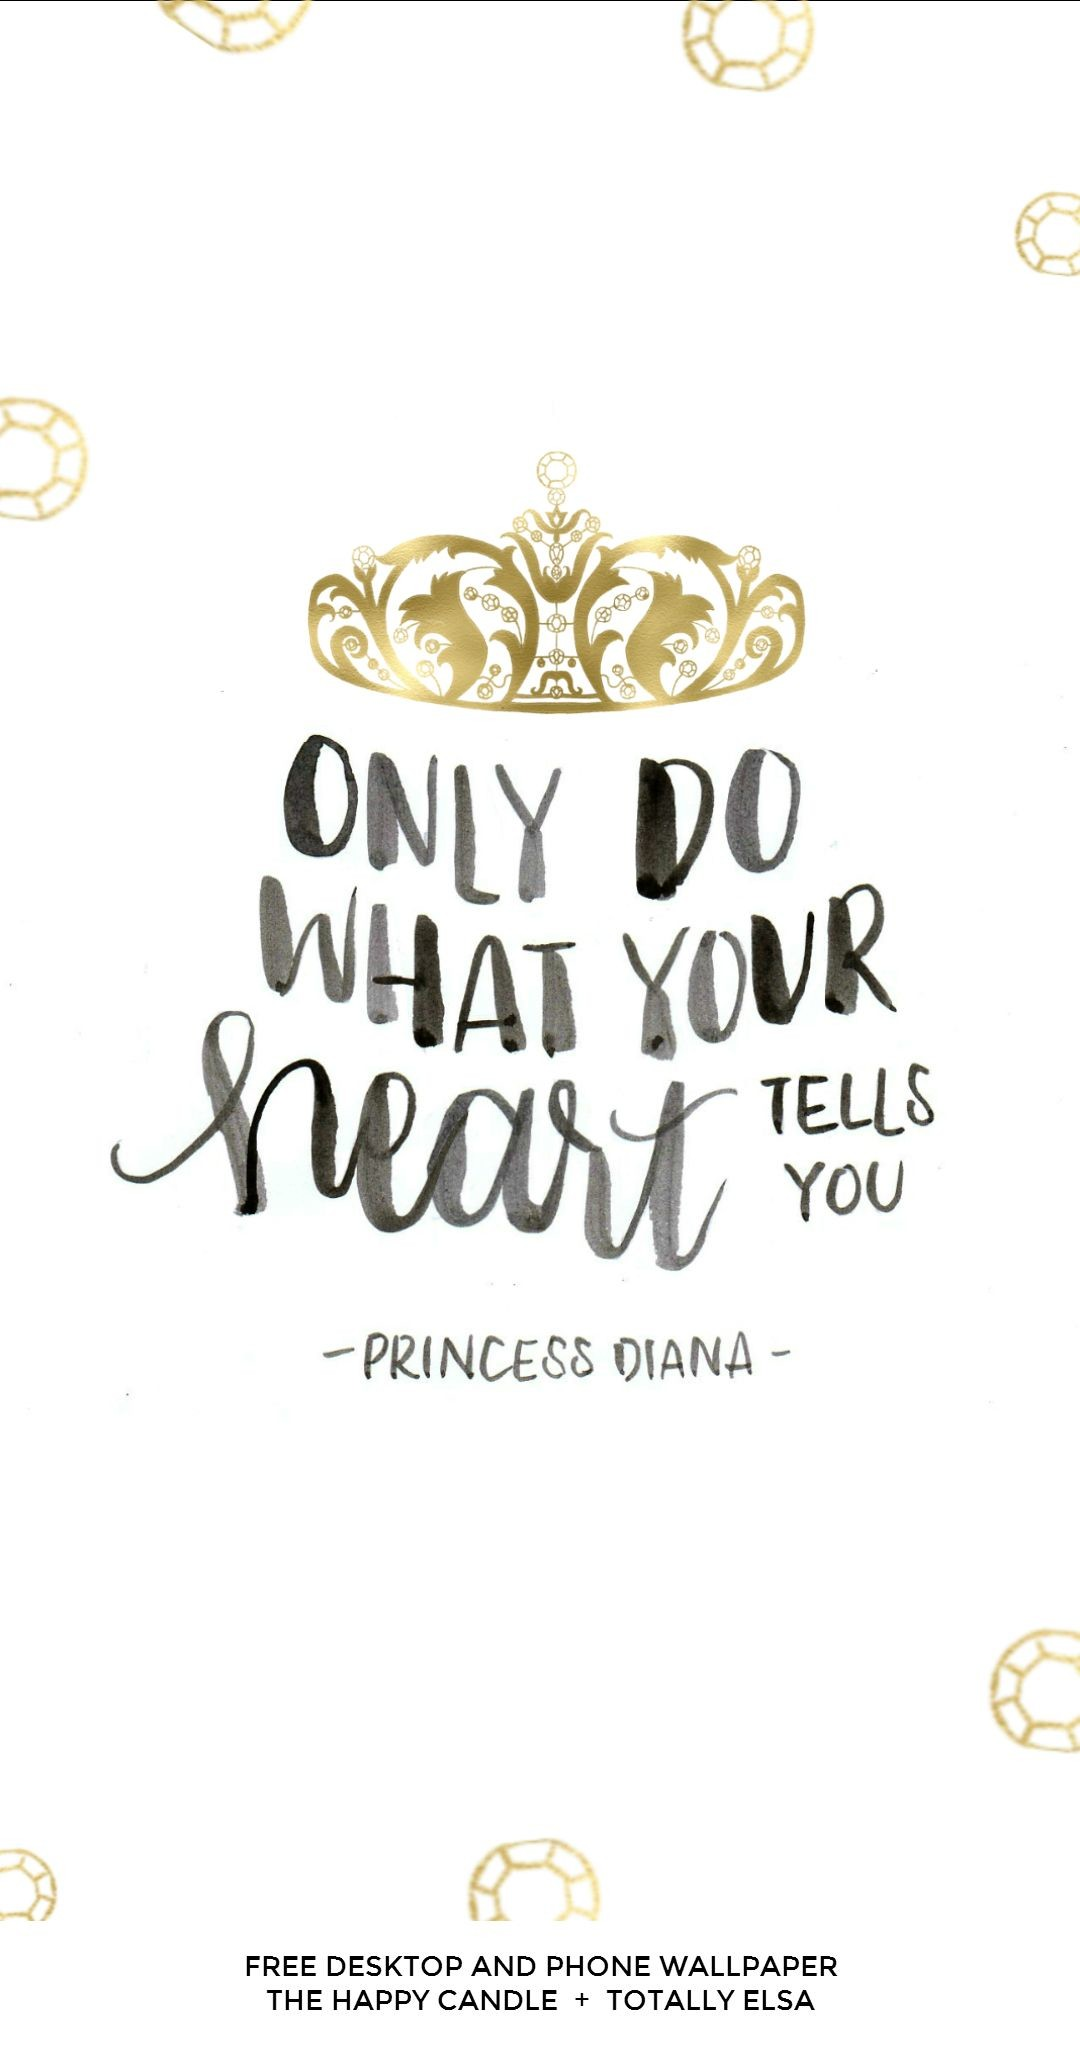 1080x2050 A free desktop and phone wallpaper with a quote from Princess Diana /  Created by The Happy Candle